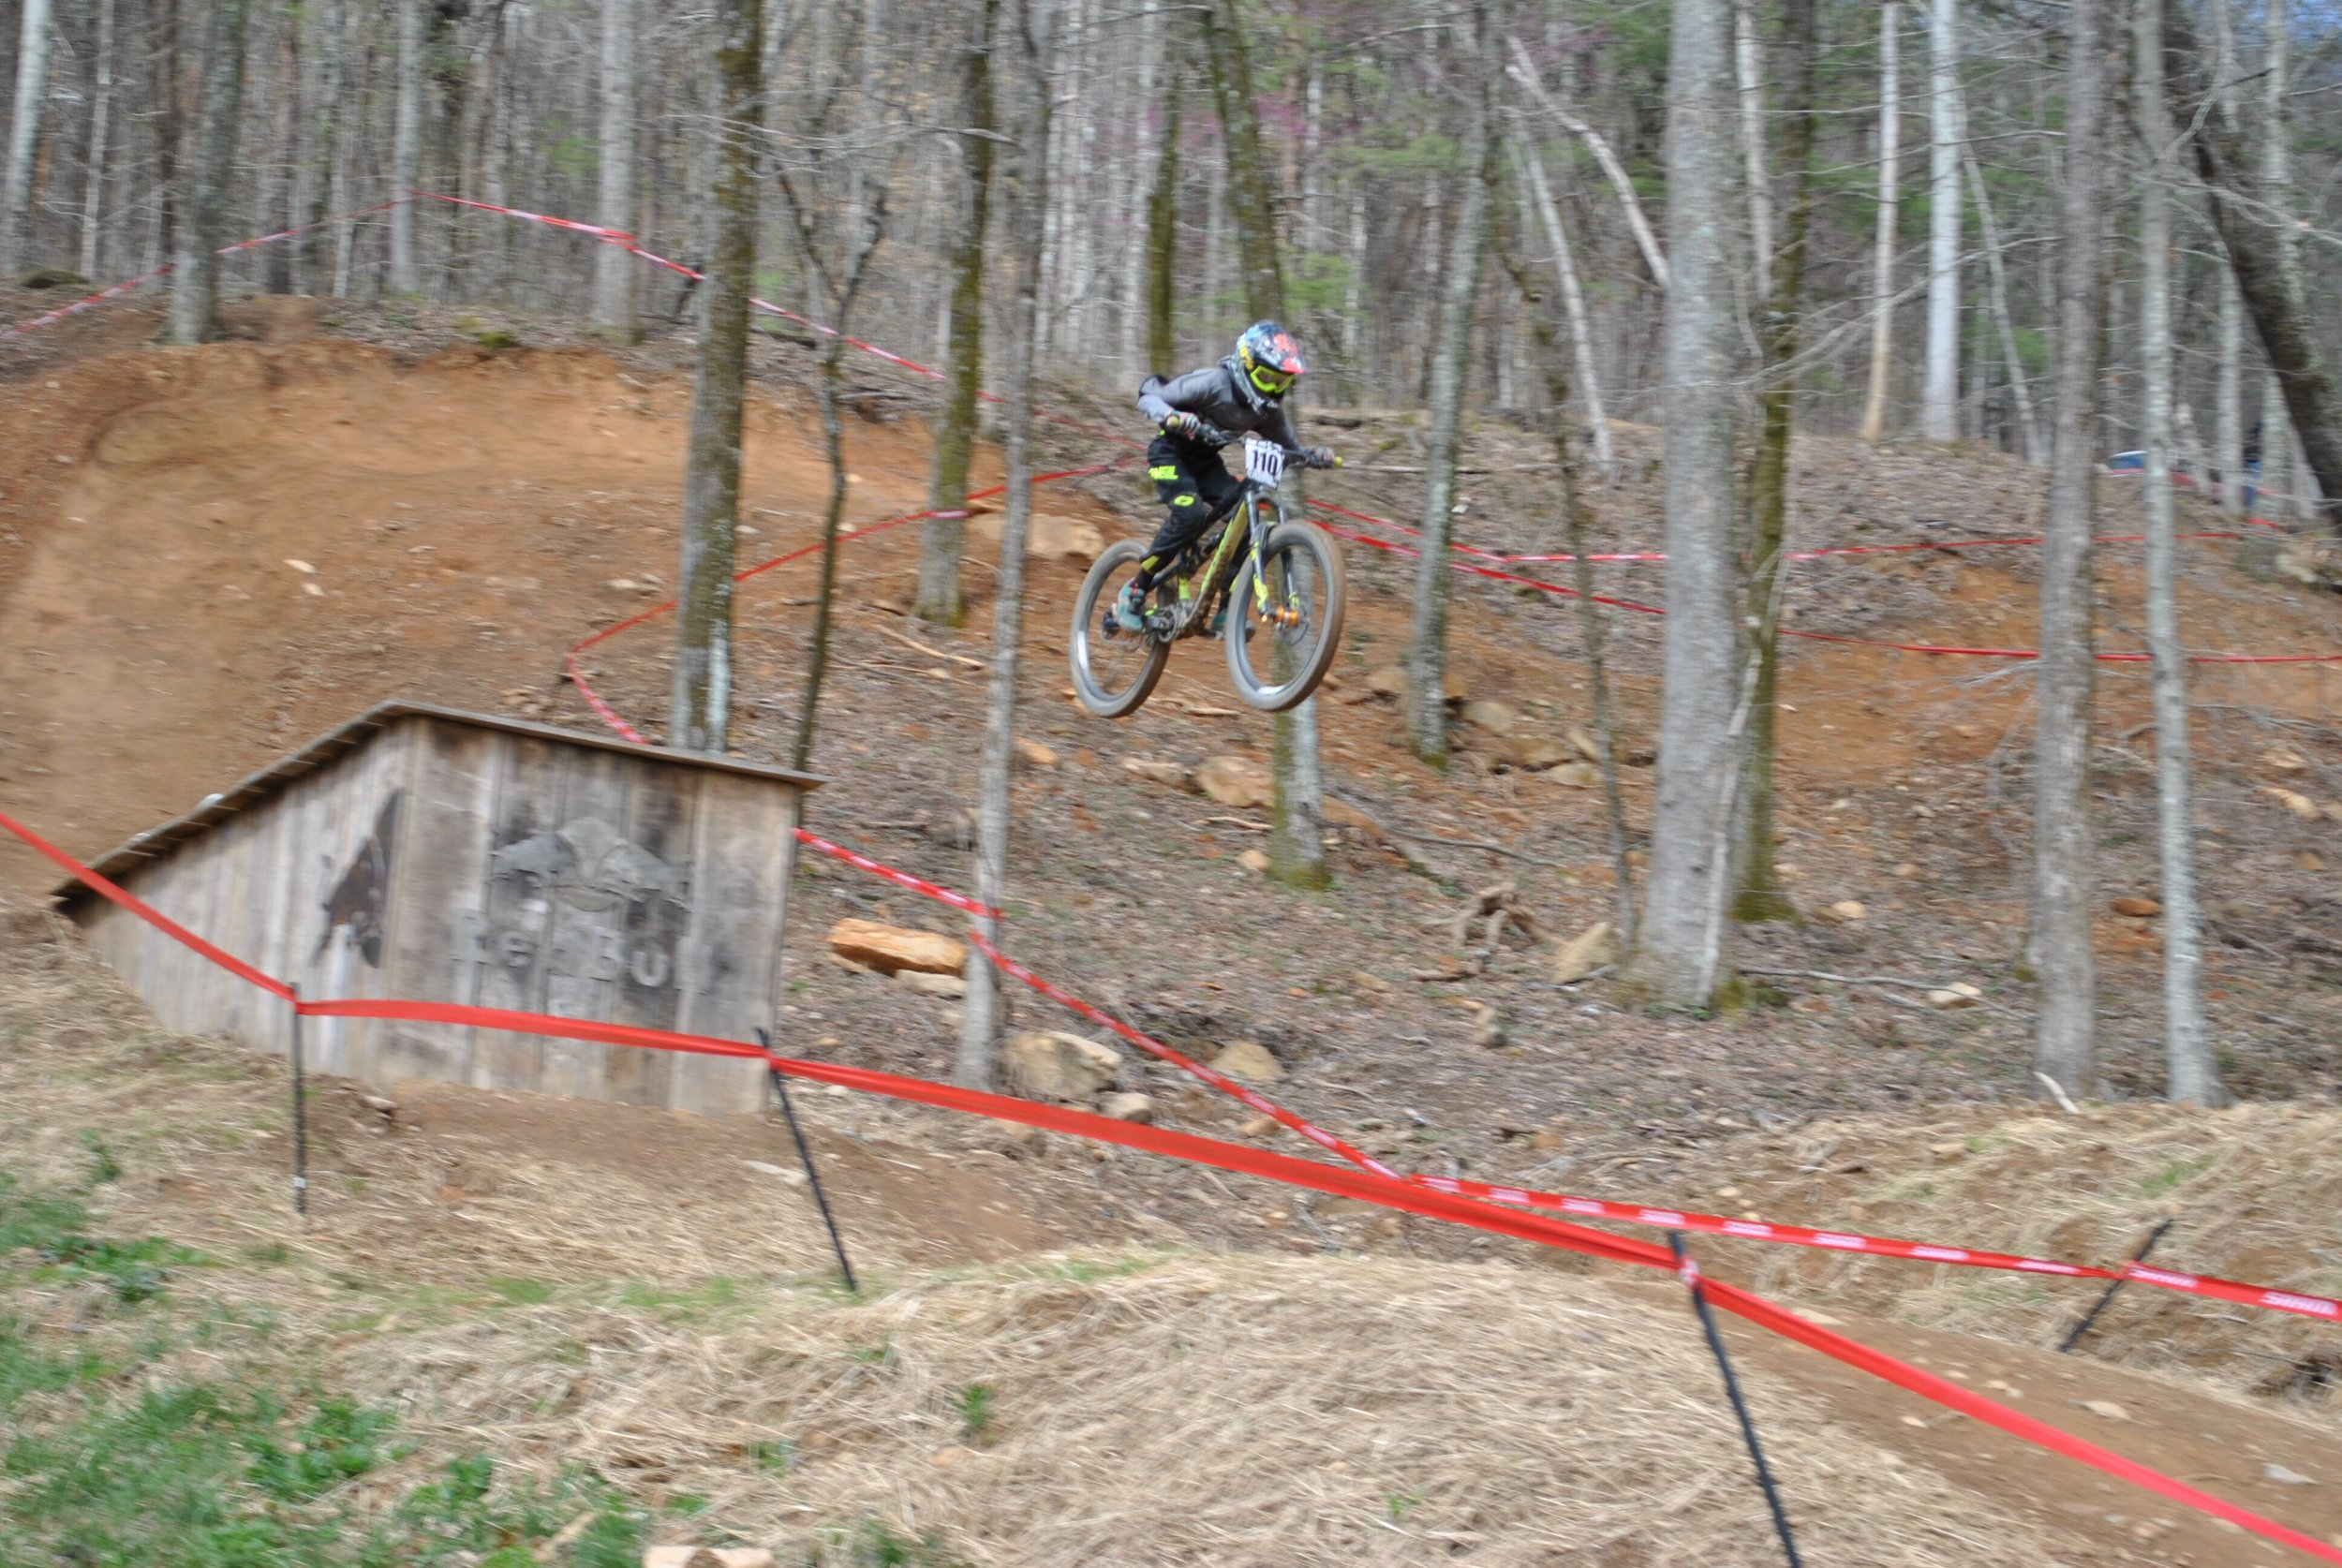 Christian Carbonell, Age 12, goes big at round two of Downhill Southeast at Windrock Bike Park.